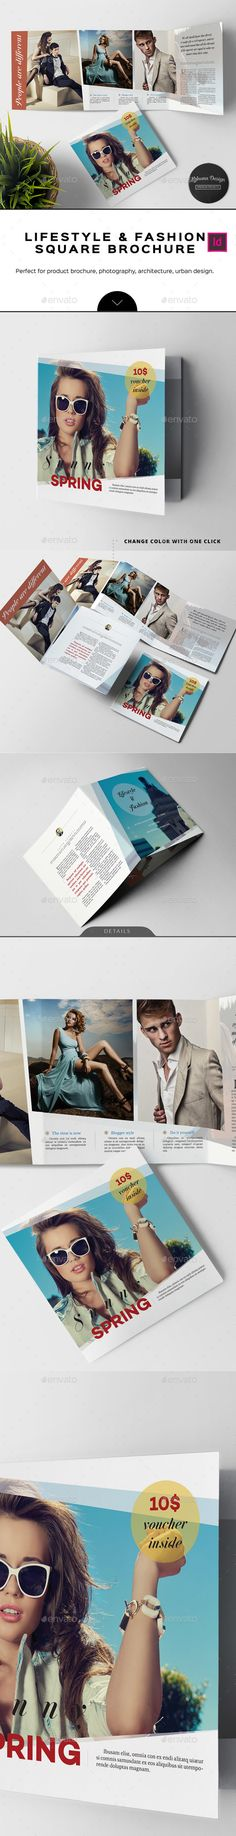 Lifestyle & Fashion Square Brochure Template InDesign INDD. Download here: http://graphicriver.net/item/lifestyle-fashion-square-brochure-/16448765?ref=ksioks